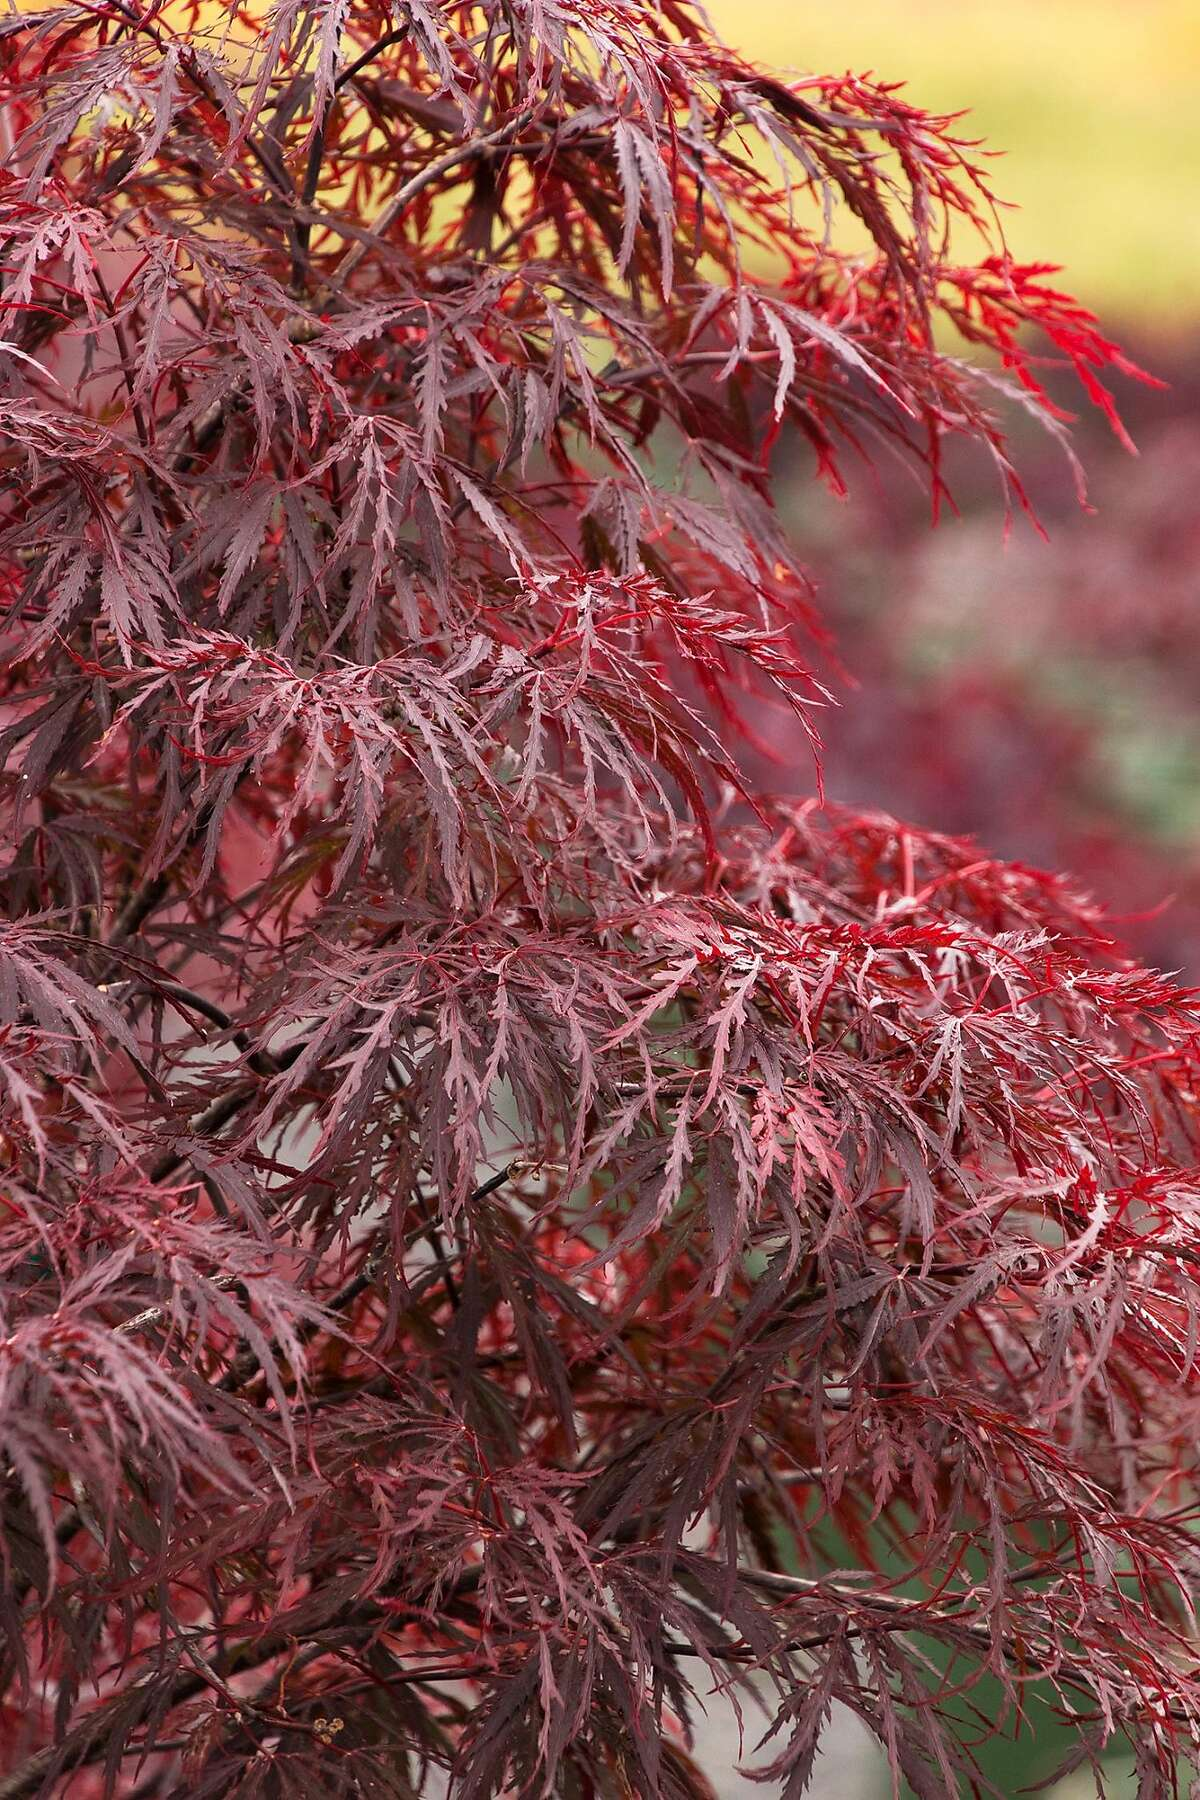 For a shorter and dissected leaf variety, the 4-8' 'Red Dragon' is a sought after choice.